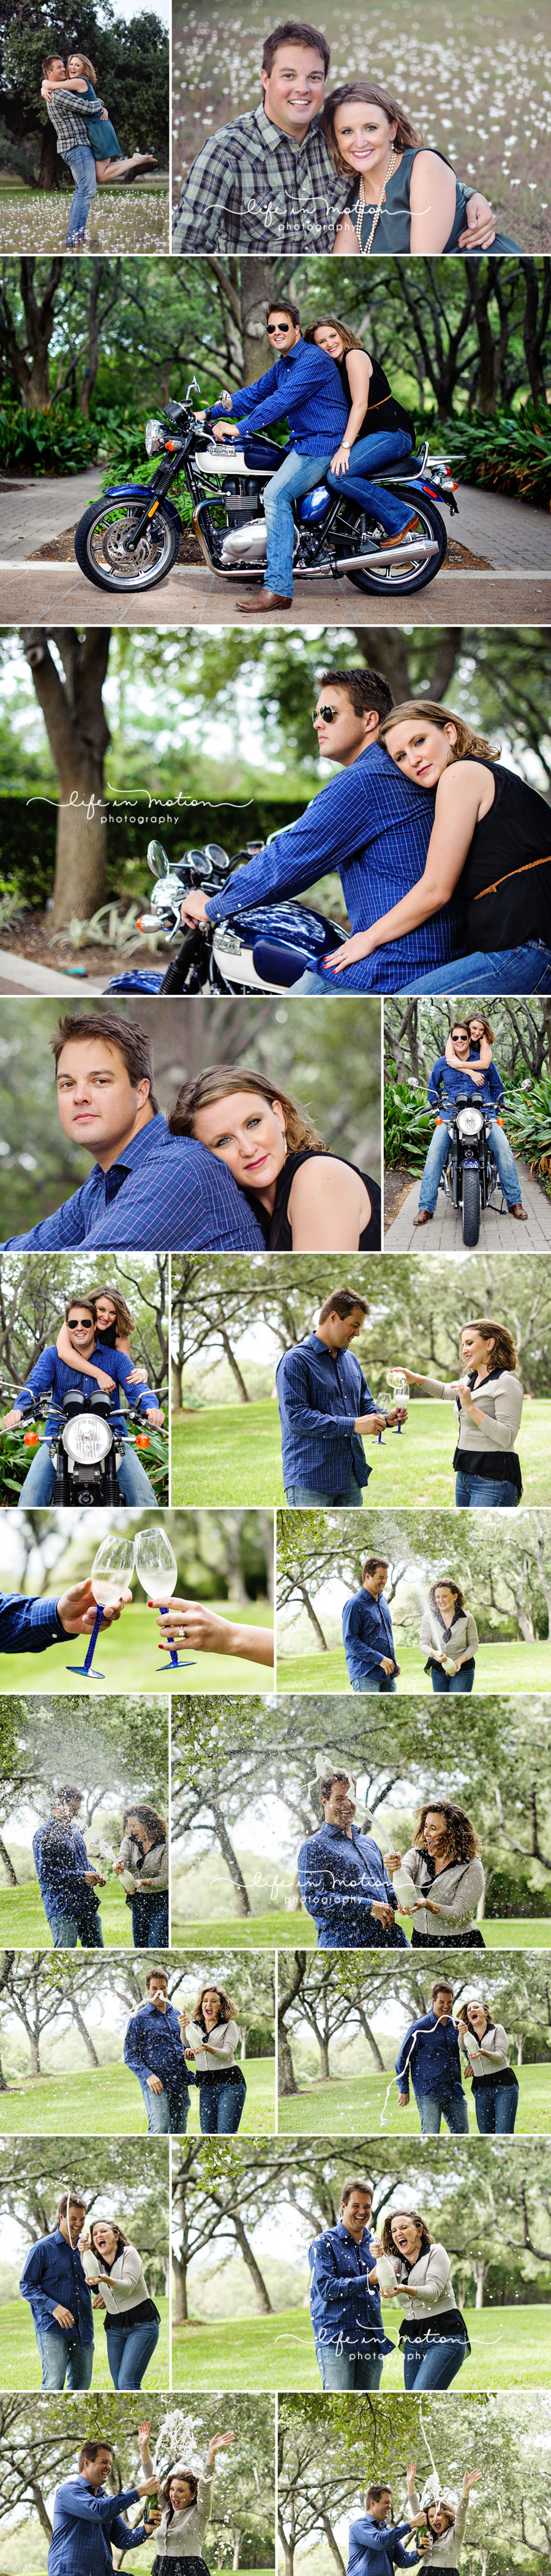 engagment_fun_photos_austin_texas